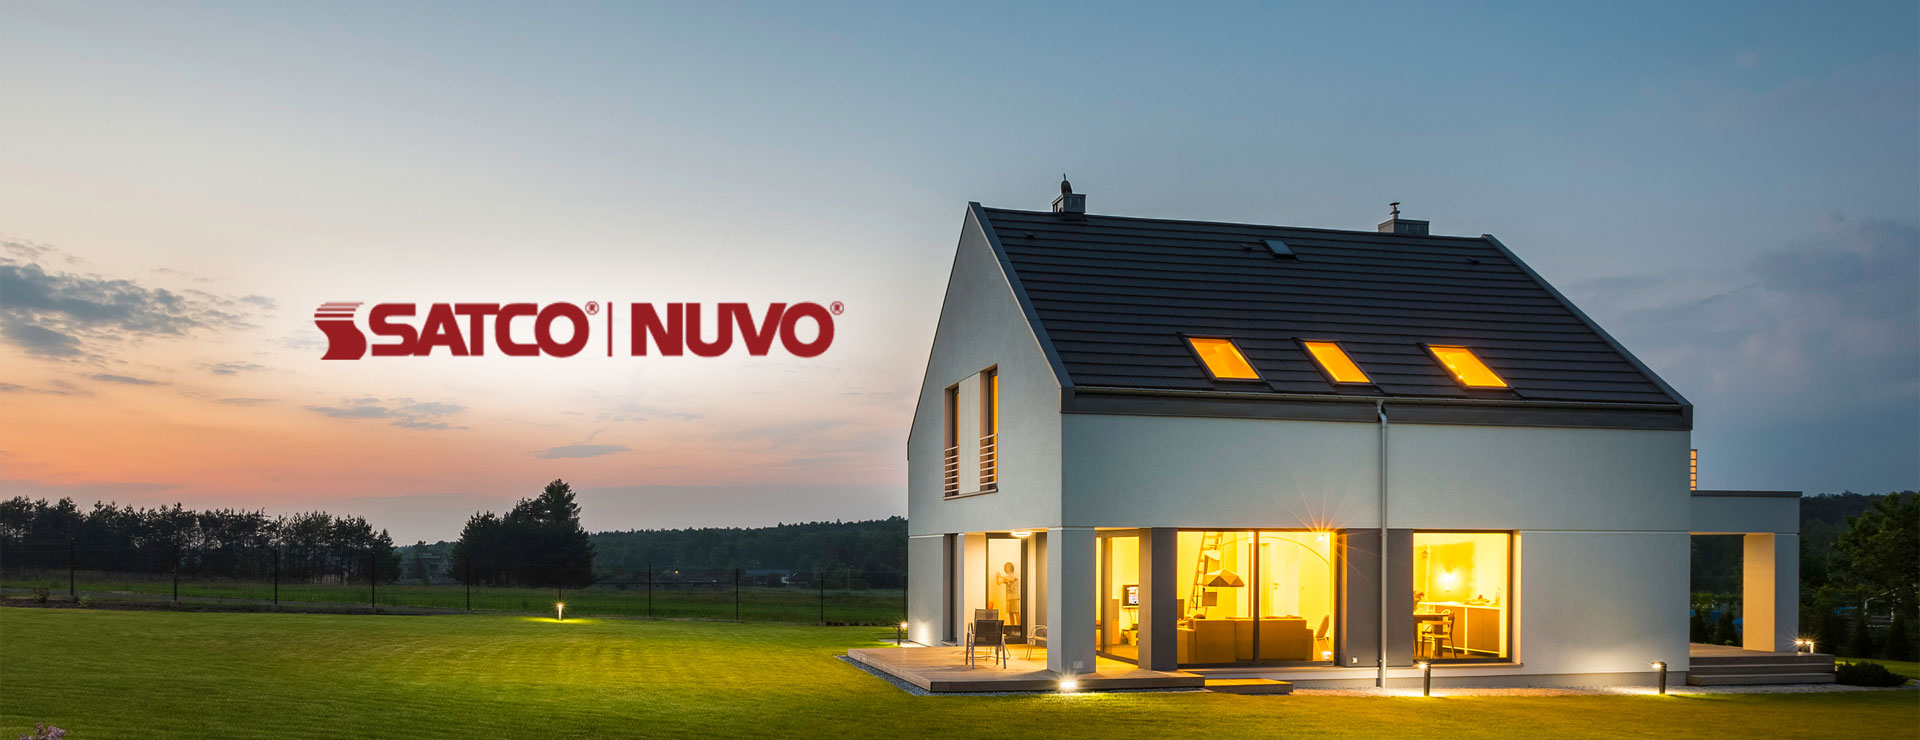 SATCO | NUVO Home Photo